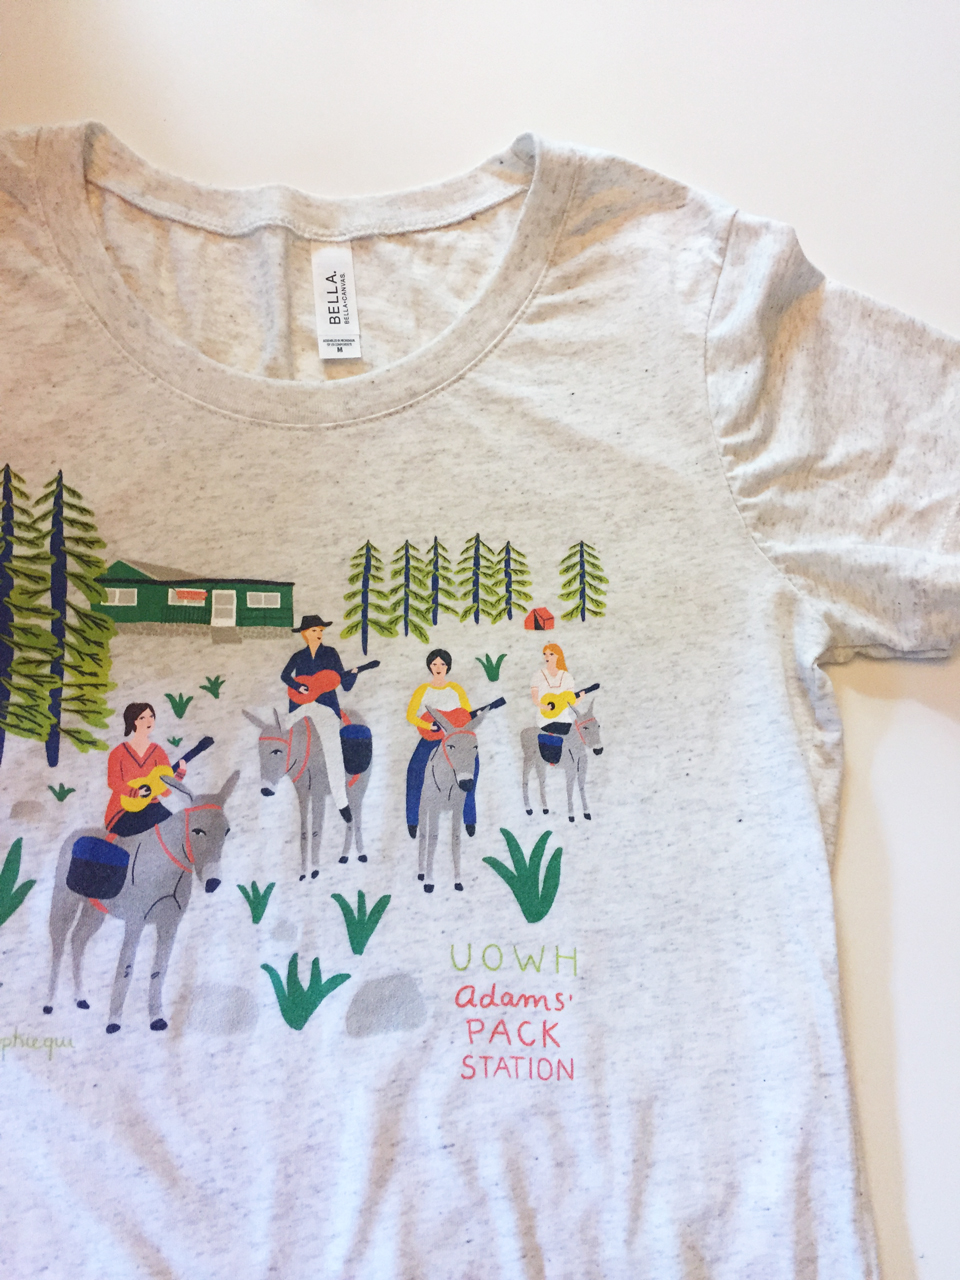 UOWH Adams' Pack Station Triblend T-Shirt (Unisex) - This shirt commemorates the whimsical coming together of the Ukulele Orchestra of the Western Hemisphere(a.k.a. UOWH) and the donkeys of Adams' Pack Station. From $27, available in Oatmeal Tri-Blend or White Fleck (looks grey).